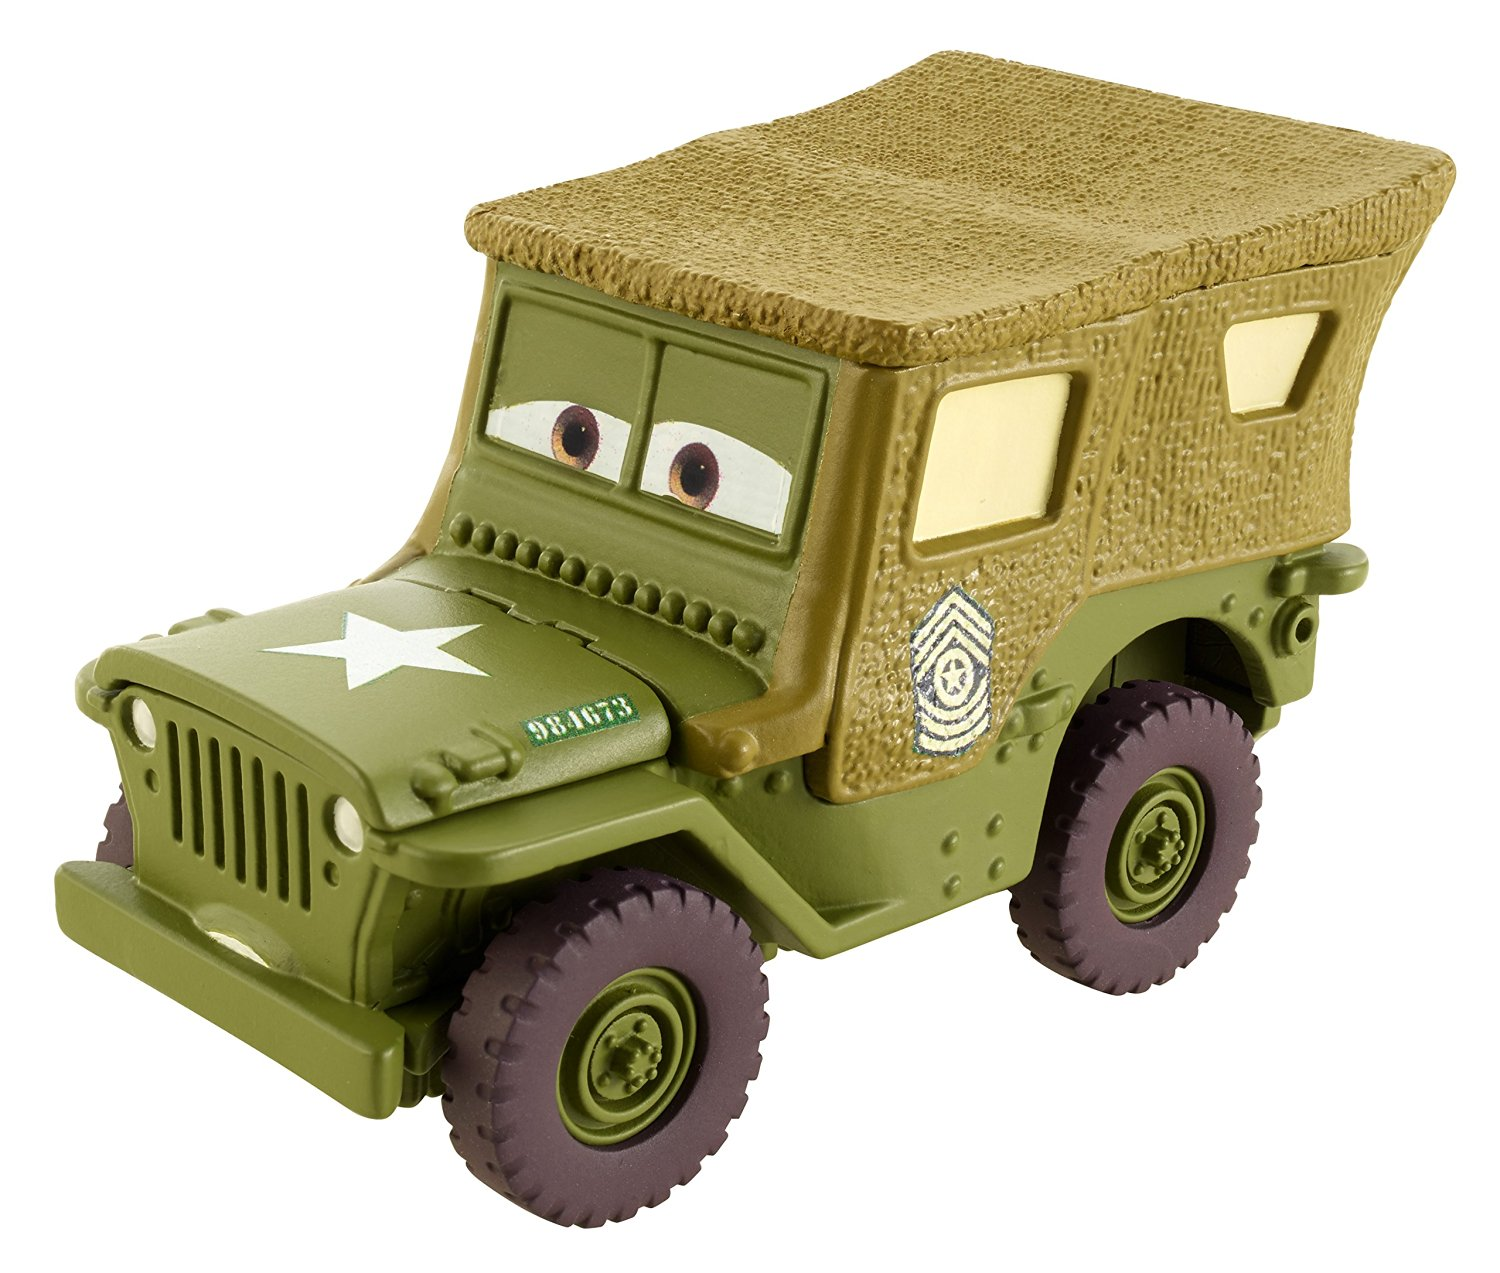 Disney/Pixar Cars Precision Series Sarge Premium Die-cast Car